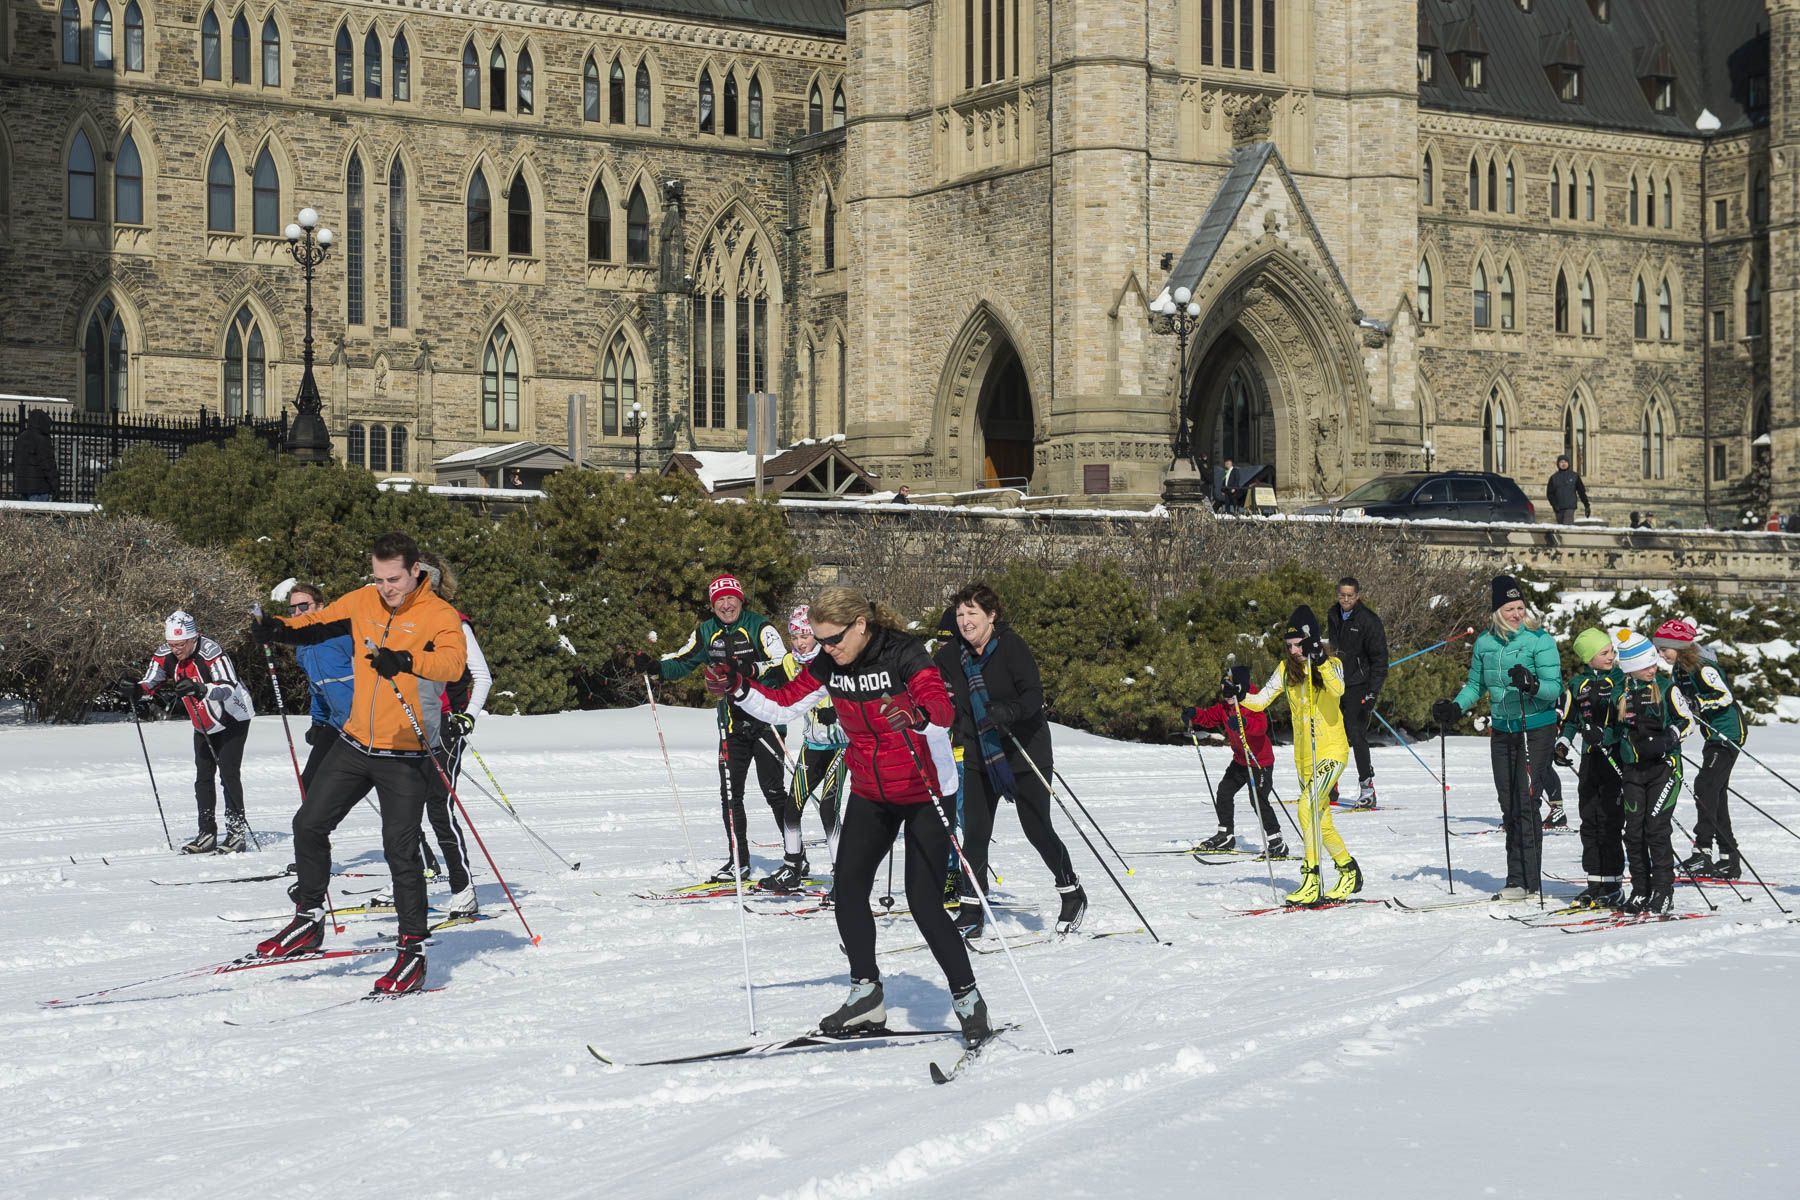 This event was created to promote National Health and Fitness Day and to encourage Canadians to embrace winter, and is held in partnership with the Nakkertok Nordic Club and XC Ski Fast.